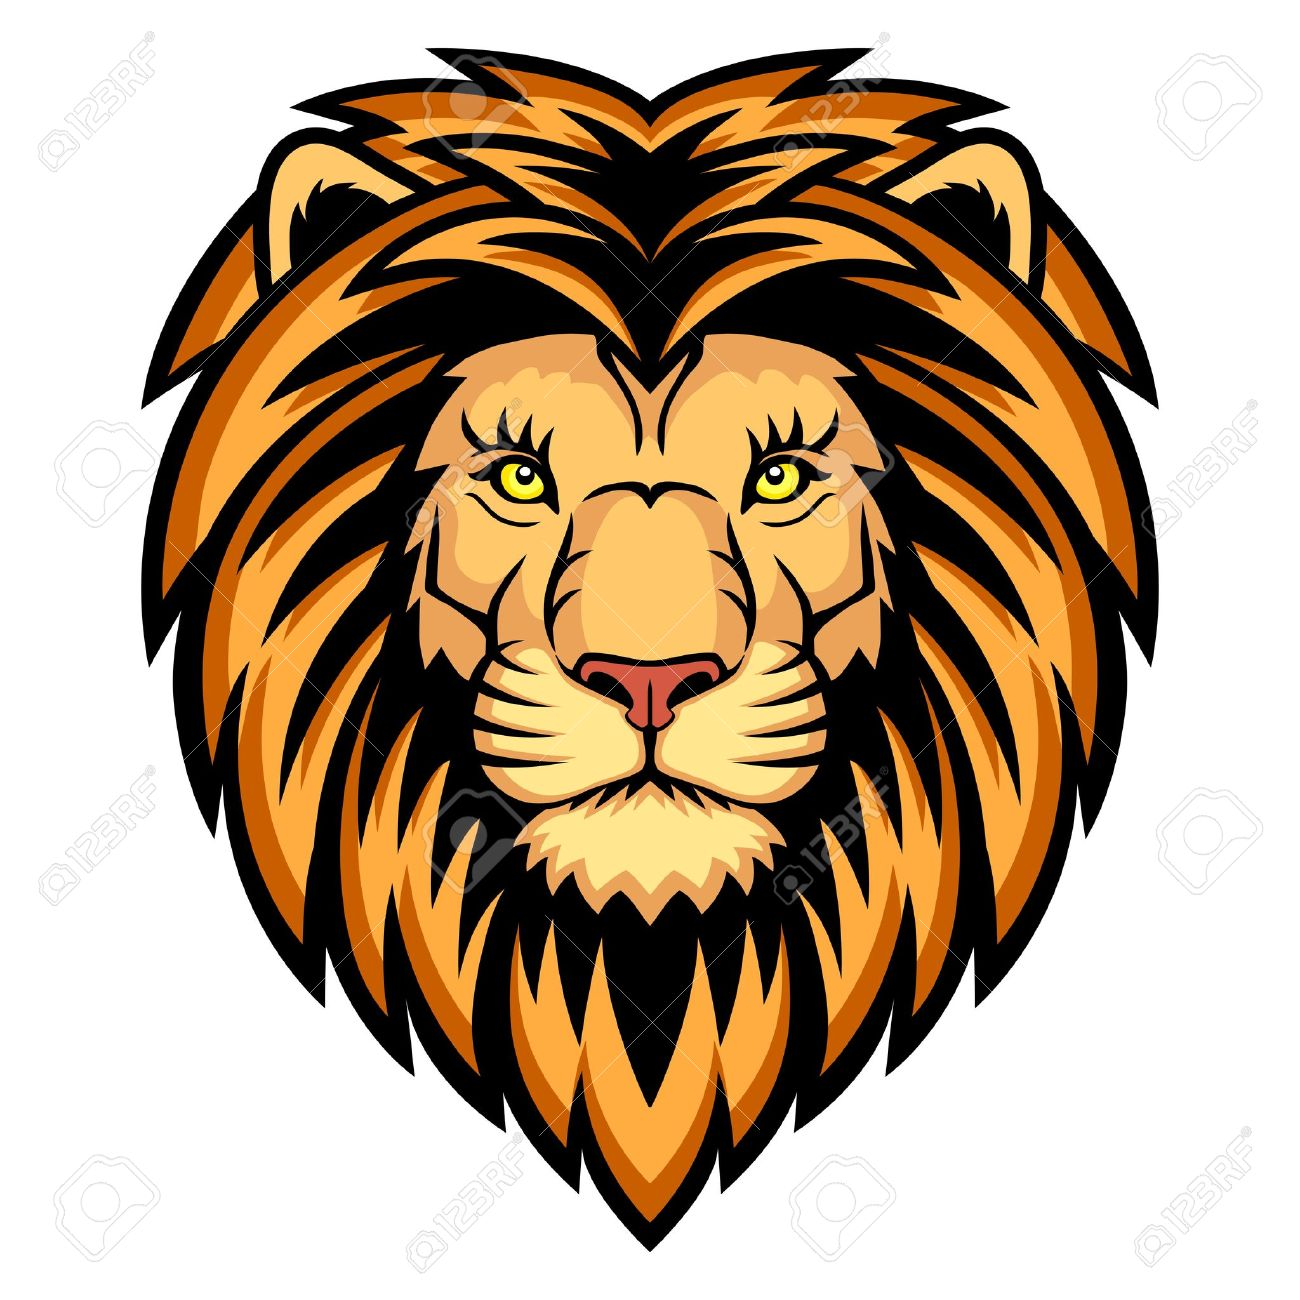 a lion head logo this is illustration ideal for a mascot and rh 123rf com lion head logo design lion head logo design